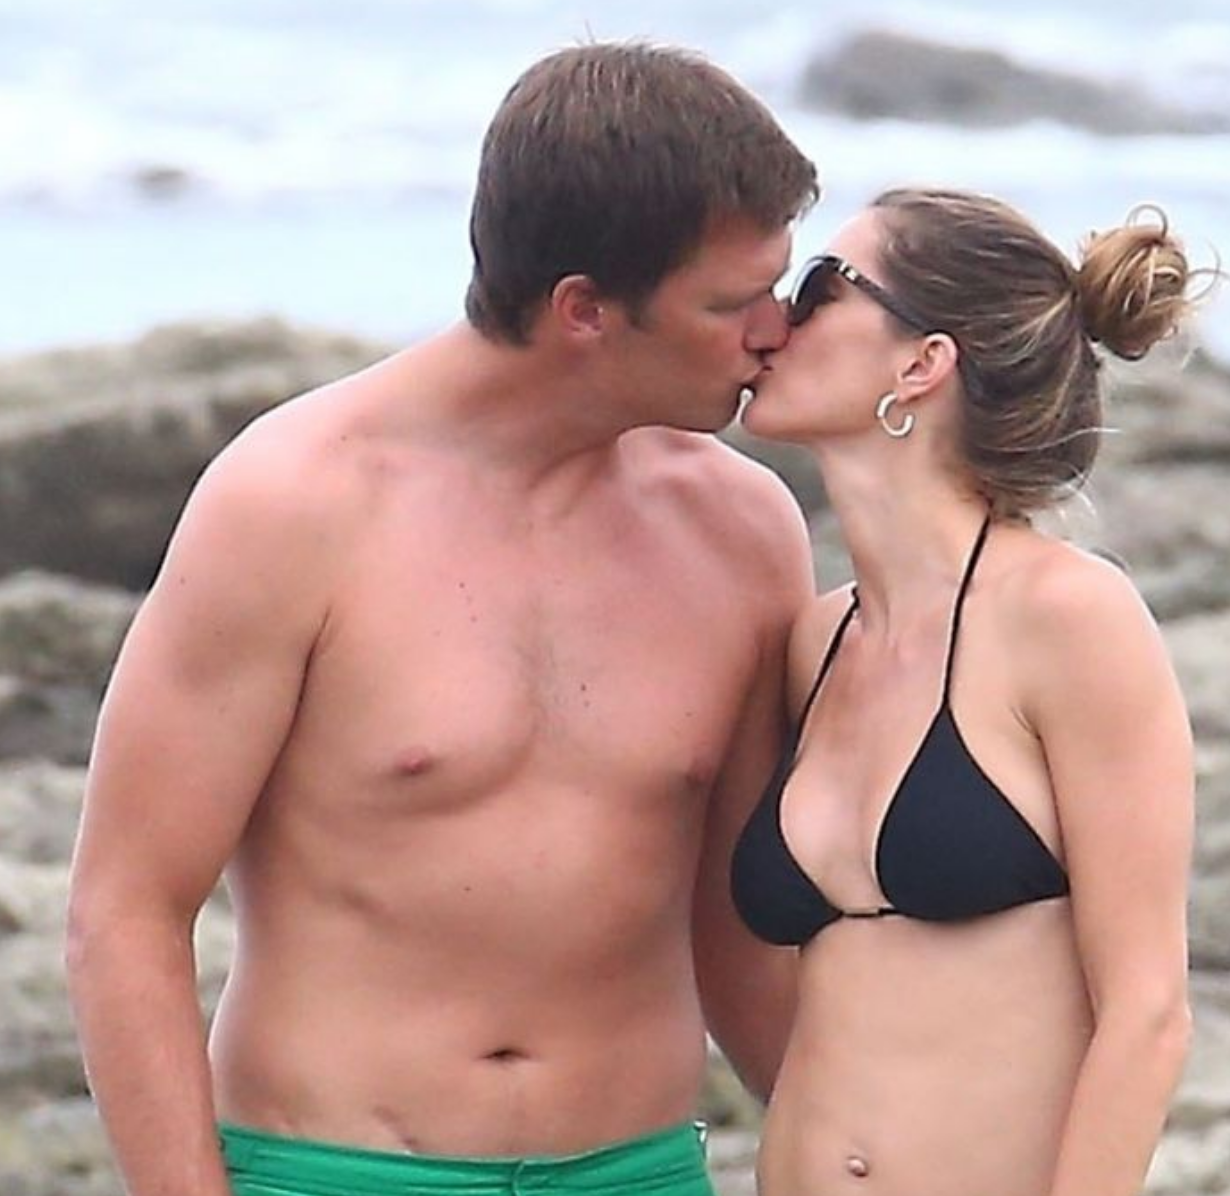 Tom Brady Body-Shamed After Shirtless Photo Reveals He Doesn't Have Six-Pack